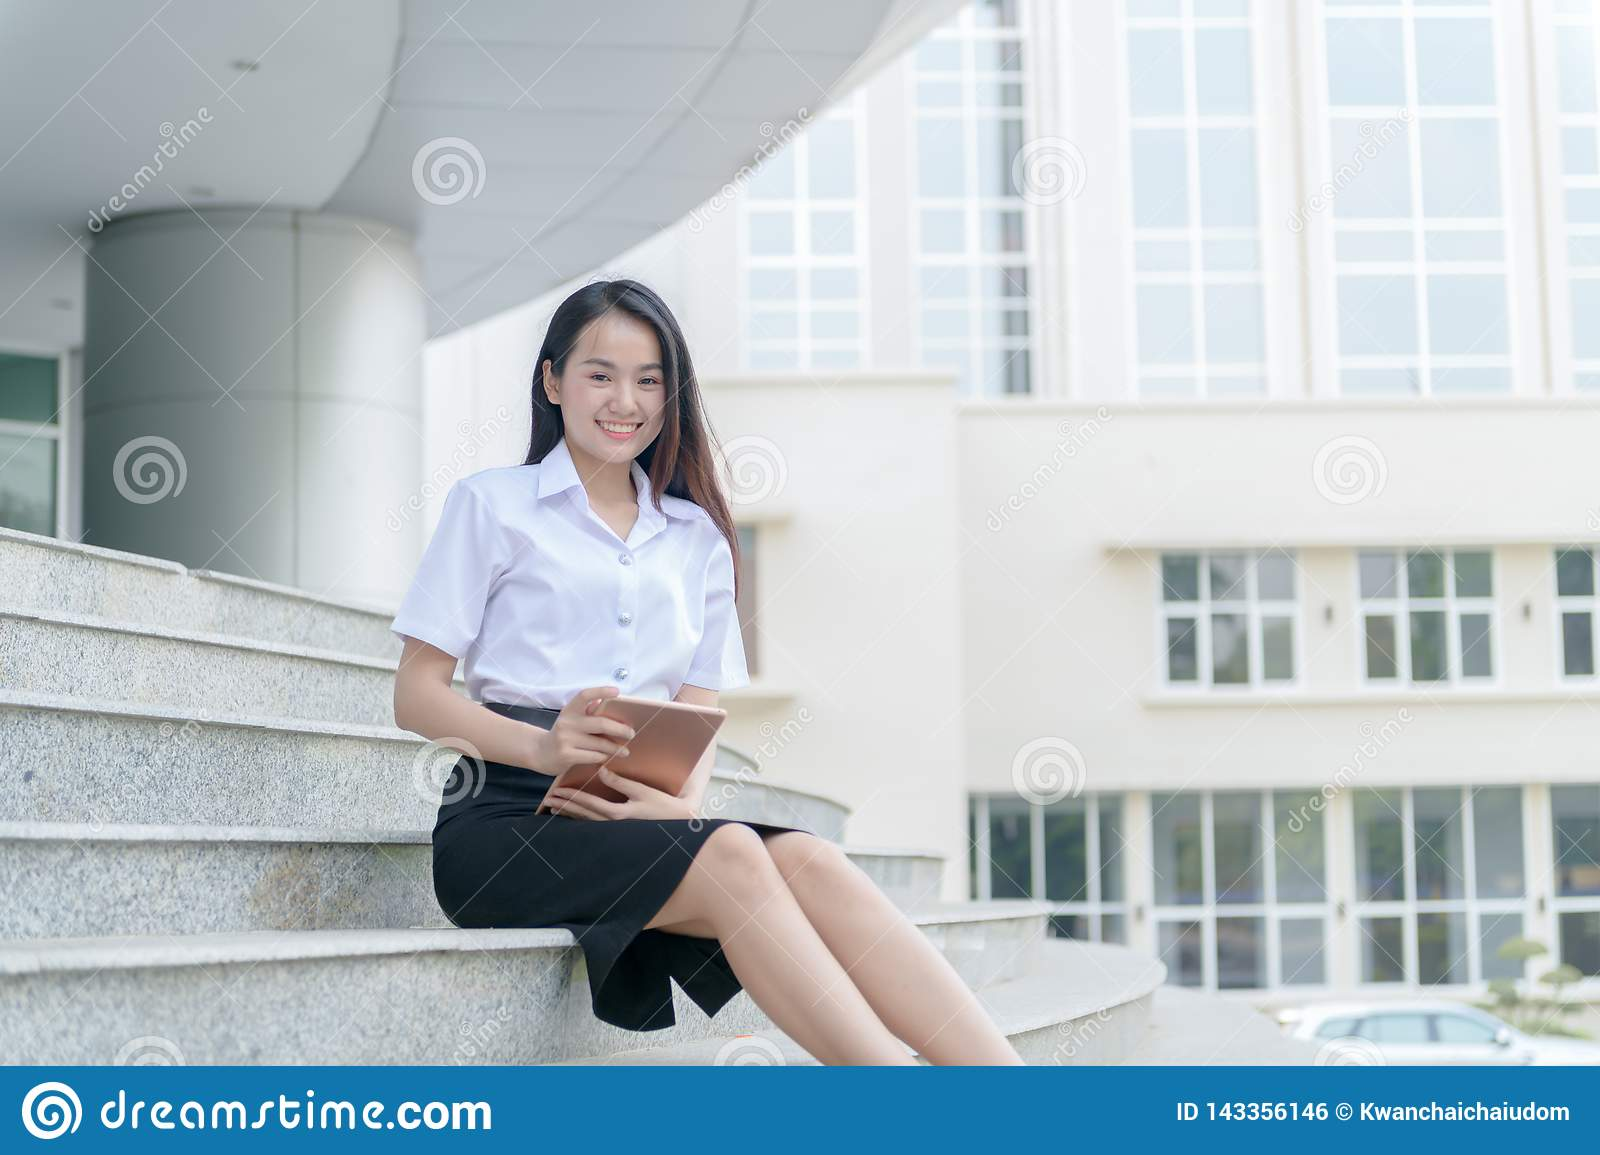 Teenage girl wearing uniform and using tablet